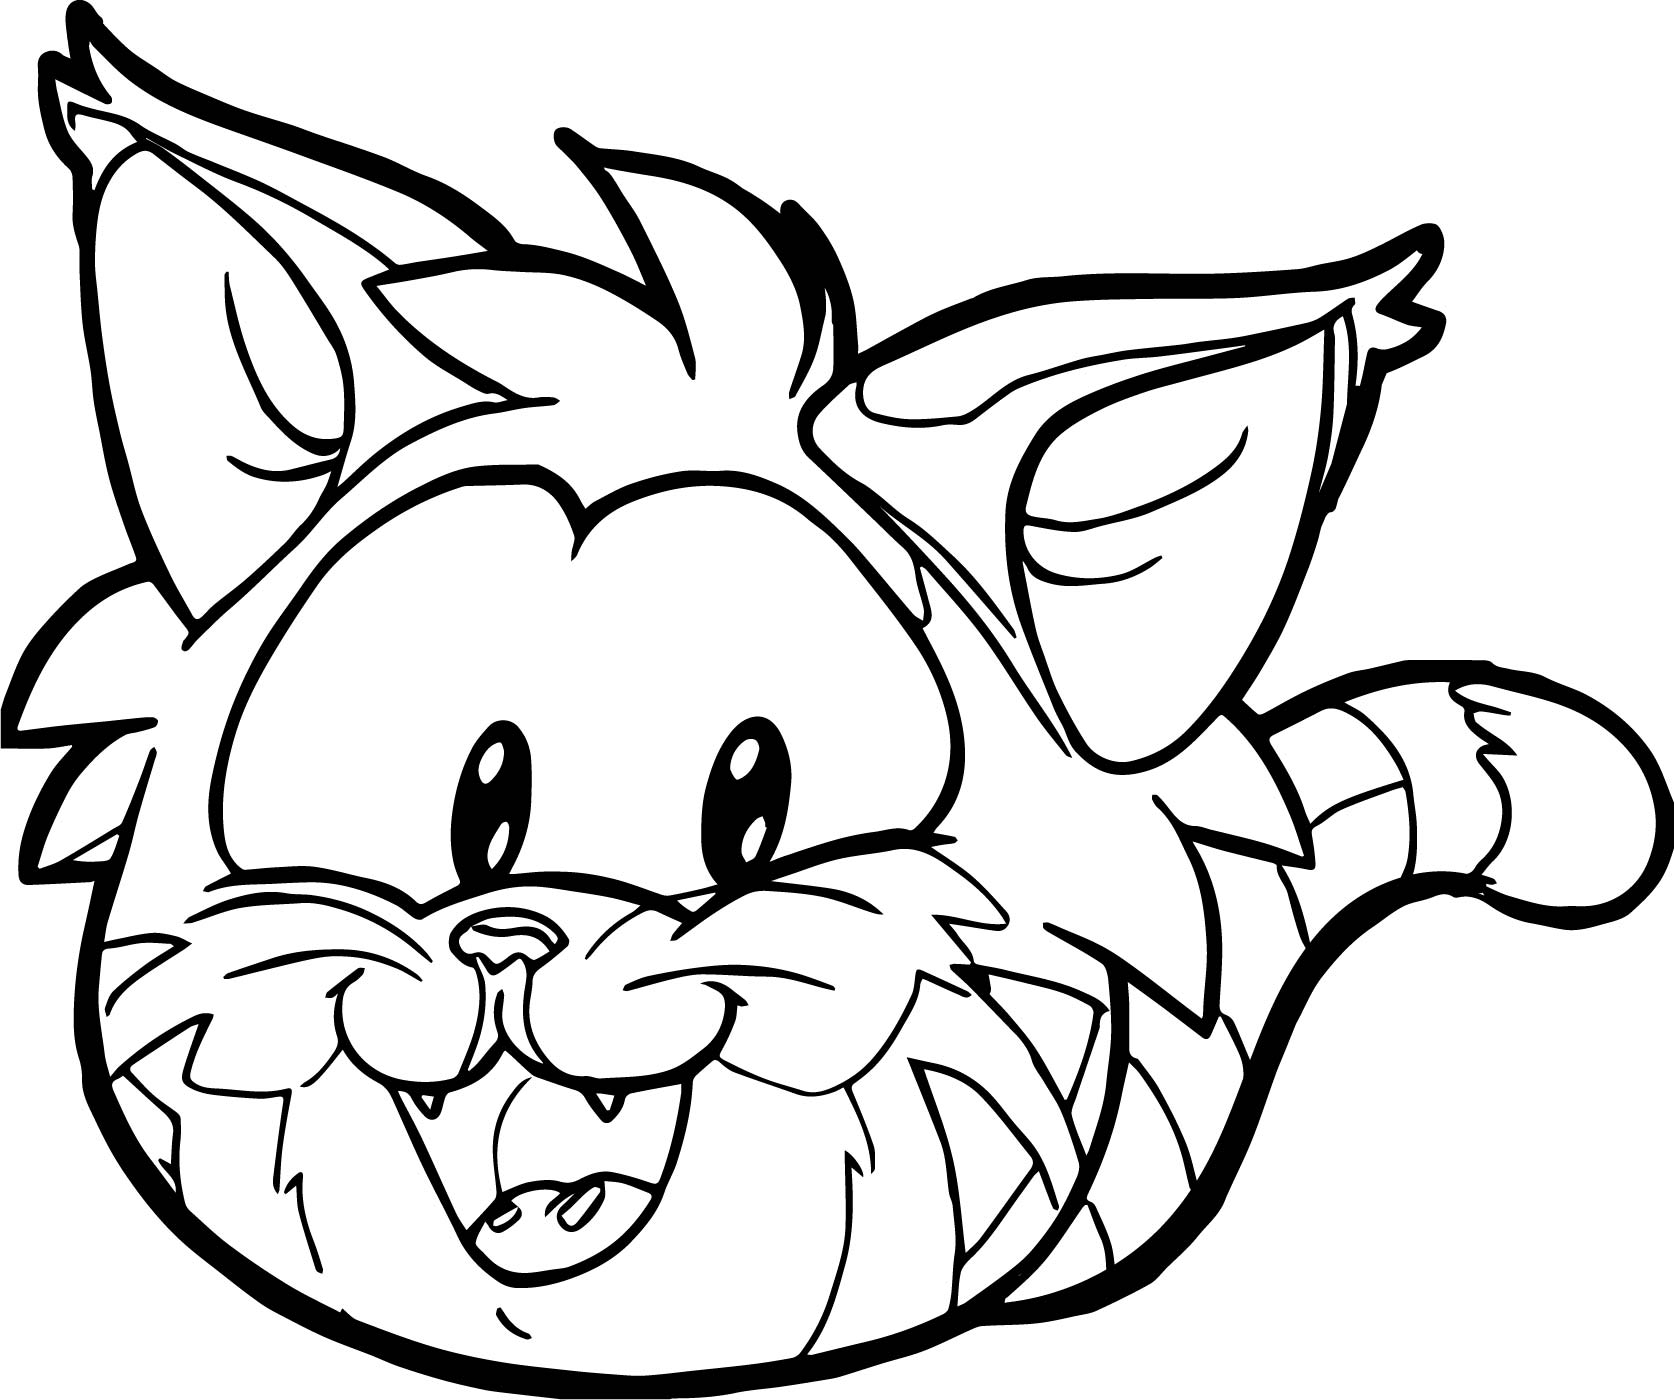 cat face coloring page easy cat face coloring coloring pages coloring cat page face